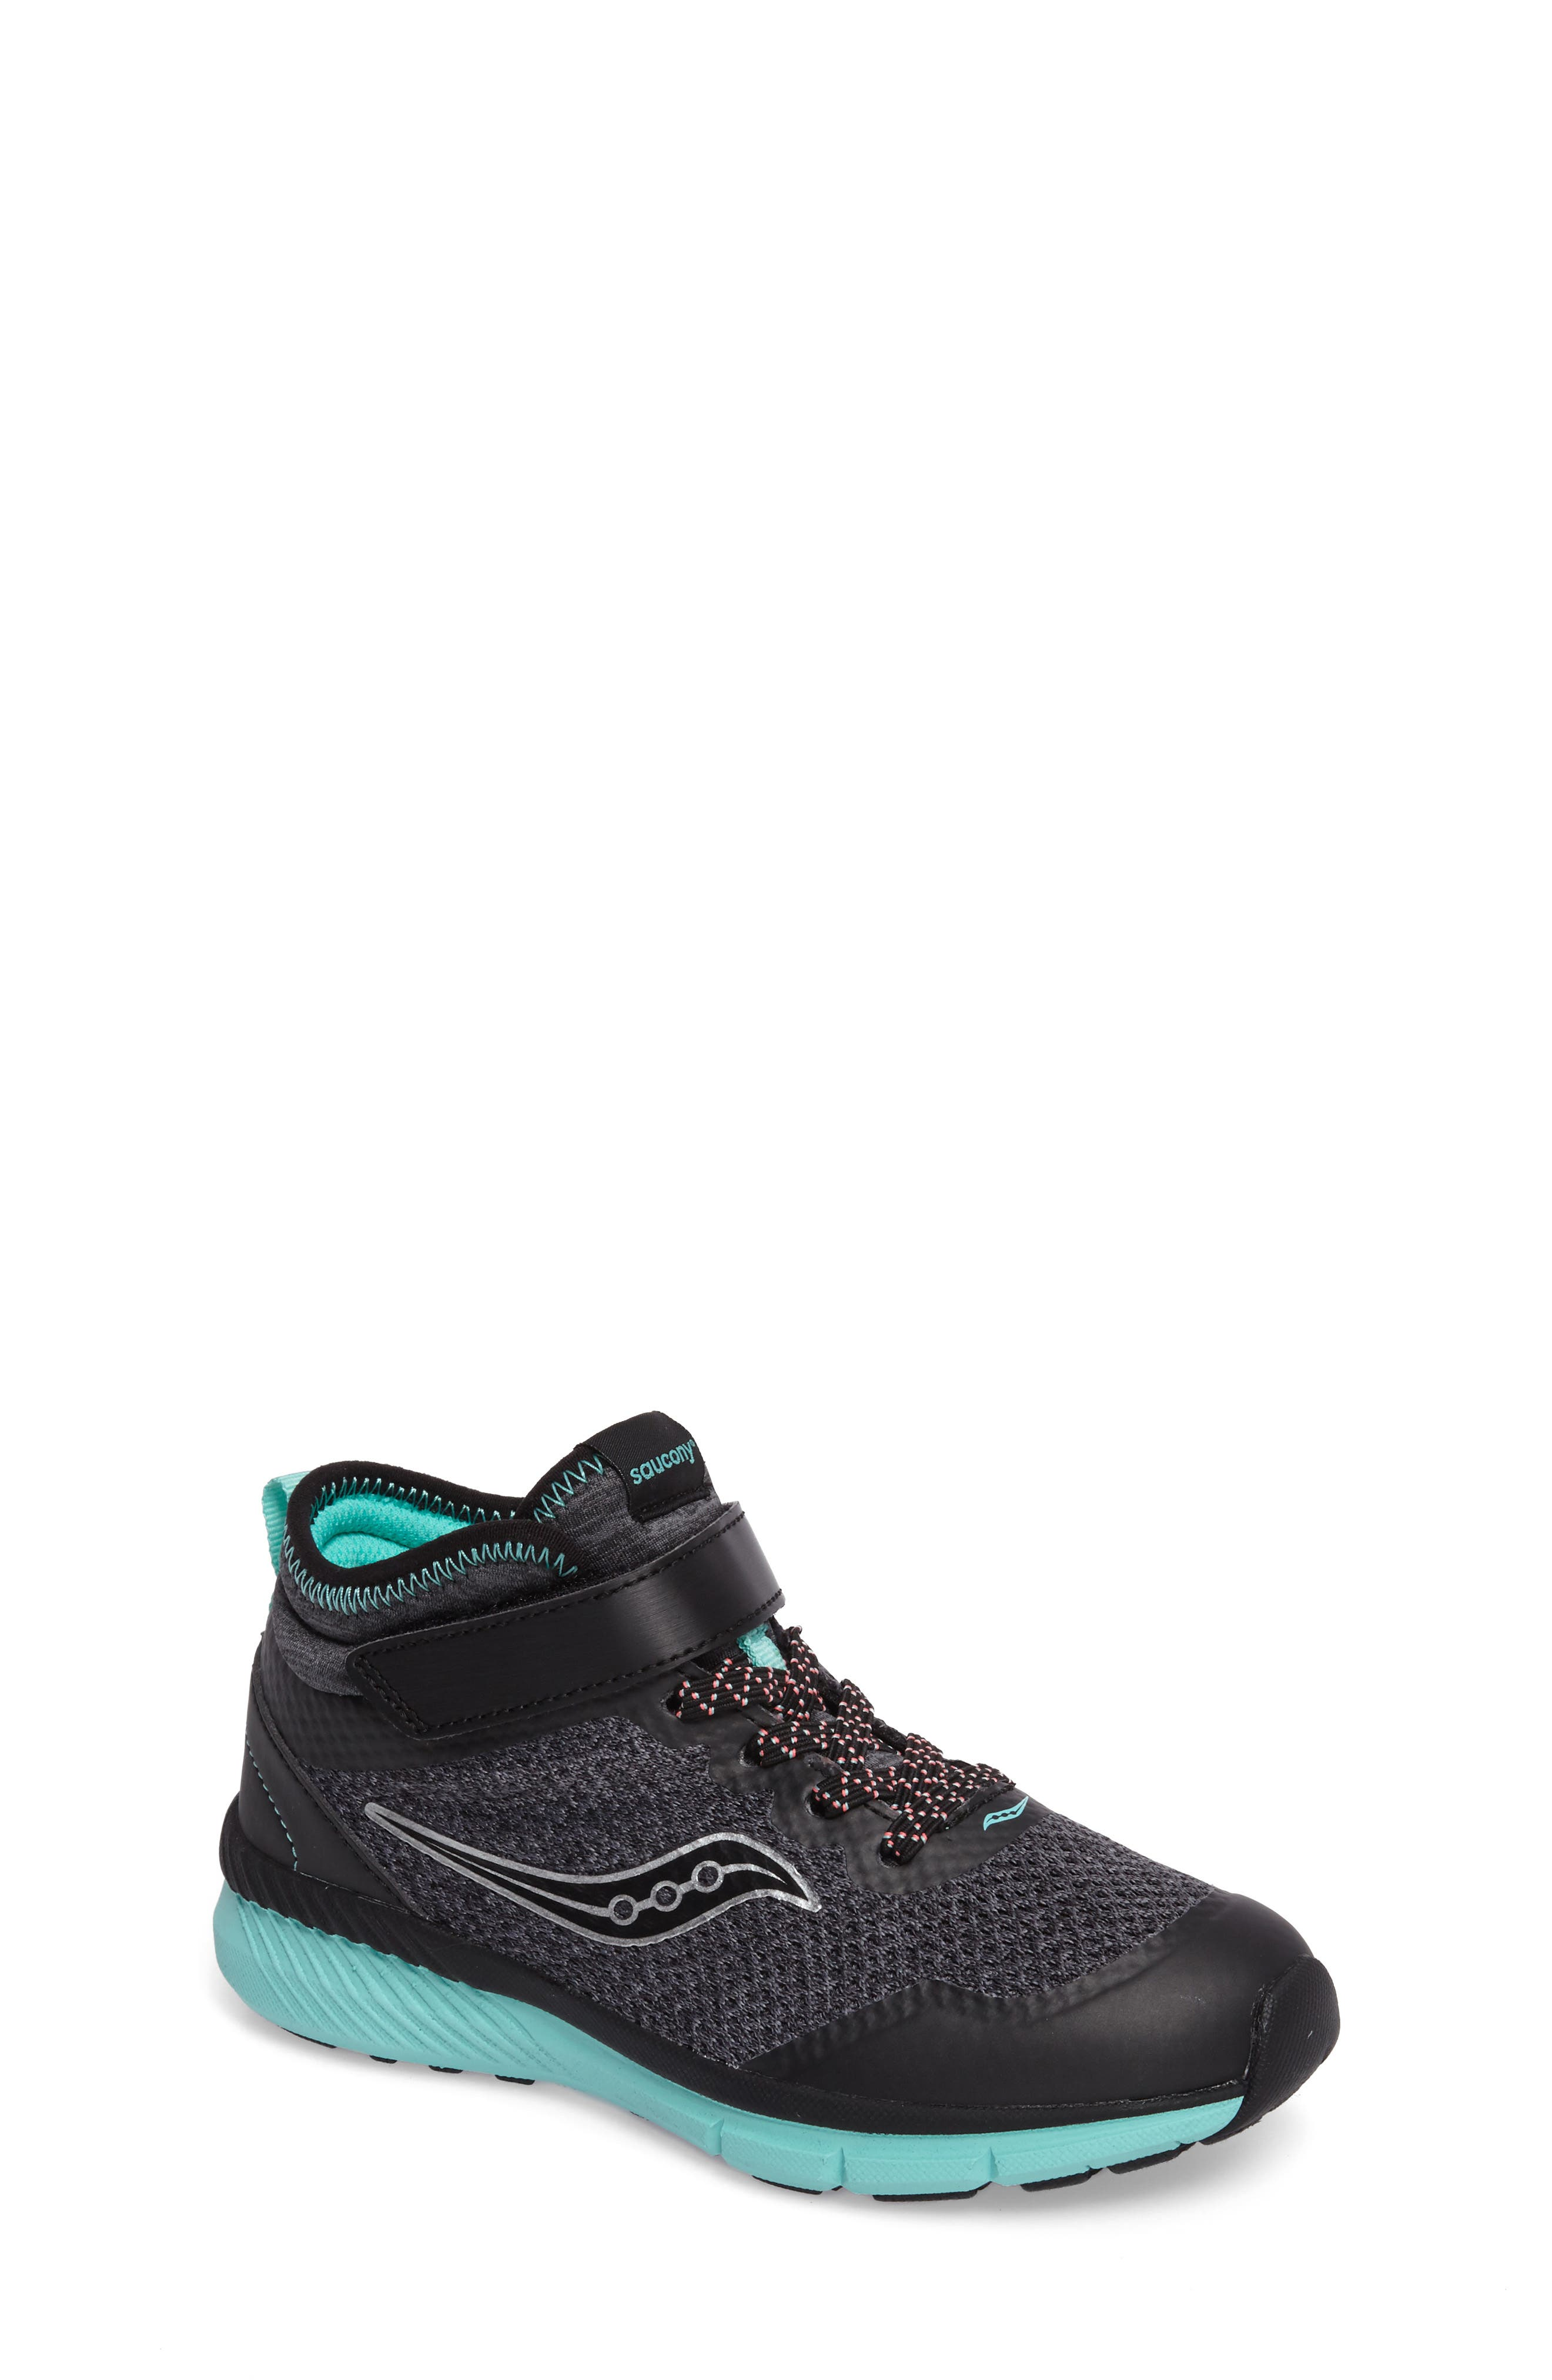 Ideal Sneaker,                         Main,                         color, Black/ Turquoise